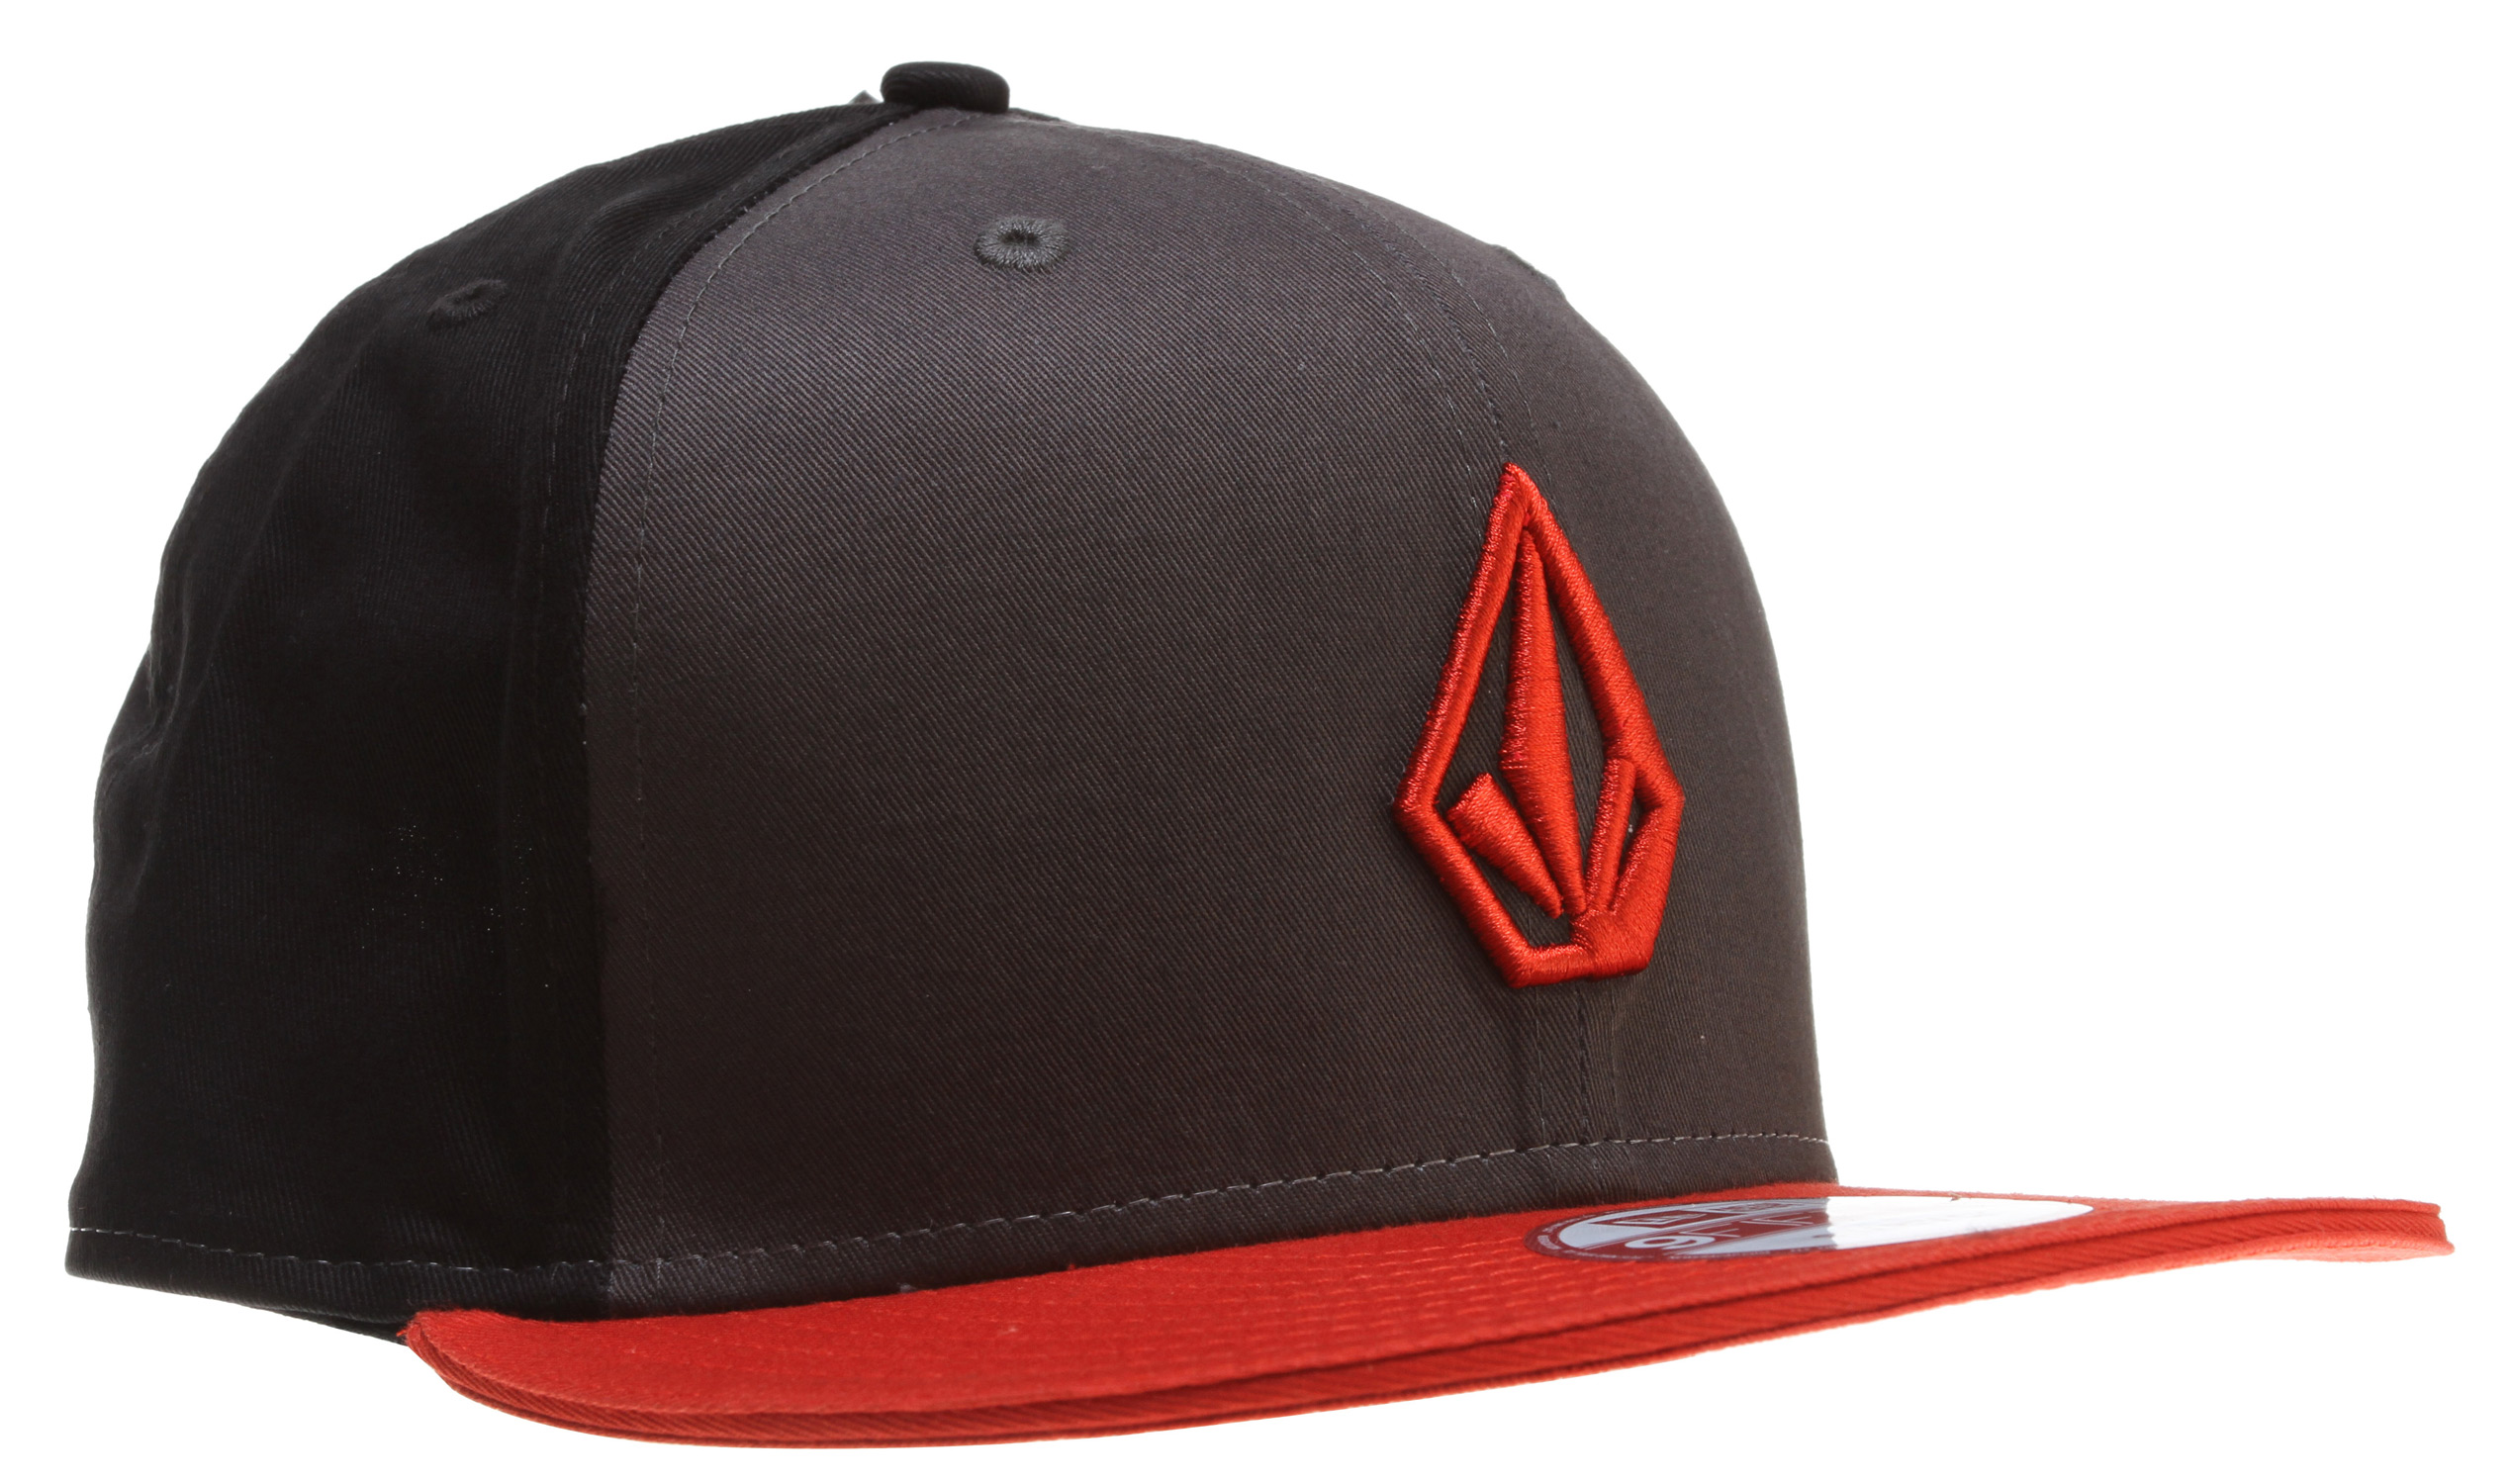 Surf Key Features of the Volcom NE Full Stone 9Fifty Cap: Signature adjustable hat from New Era™ High block structured crown 8 rows of visor stitching One size fits all - $17.95